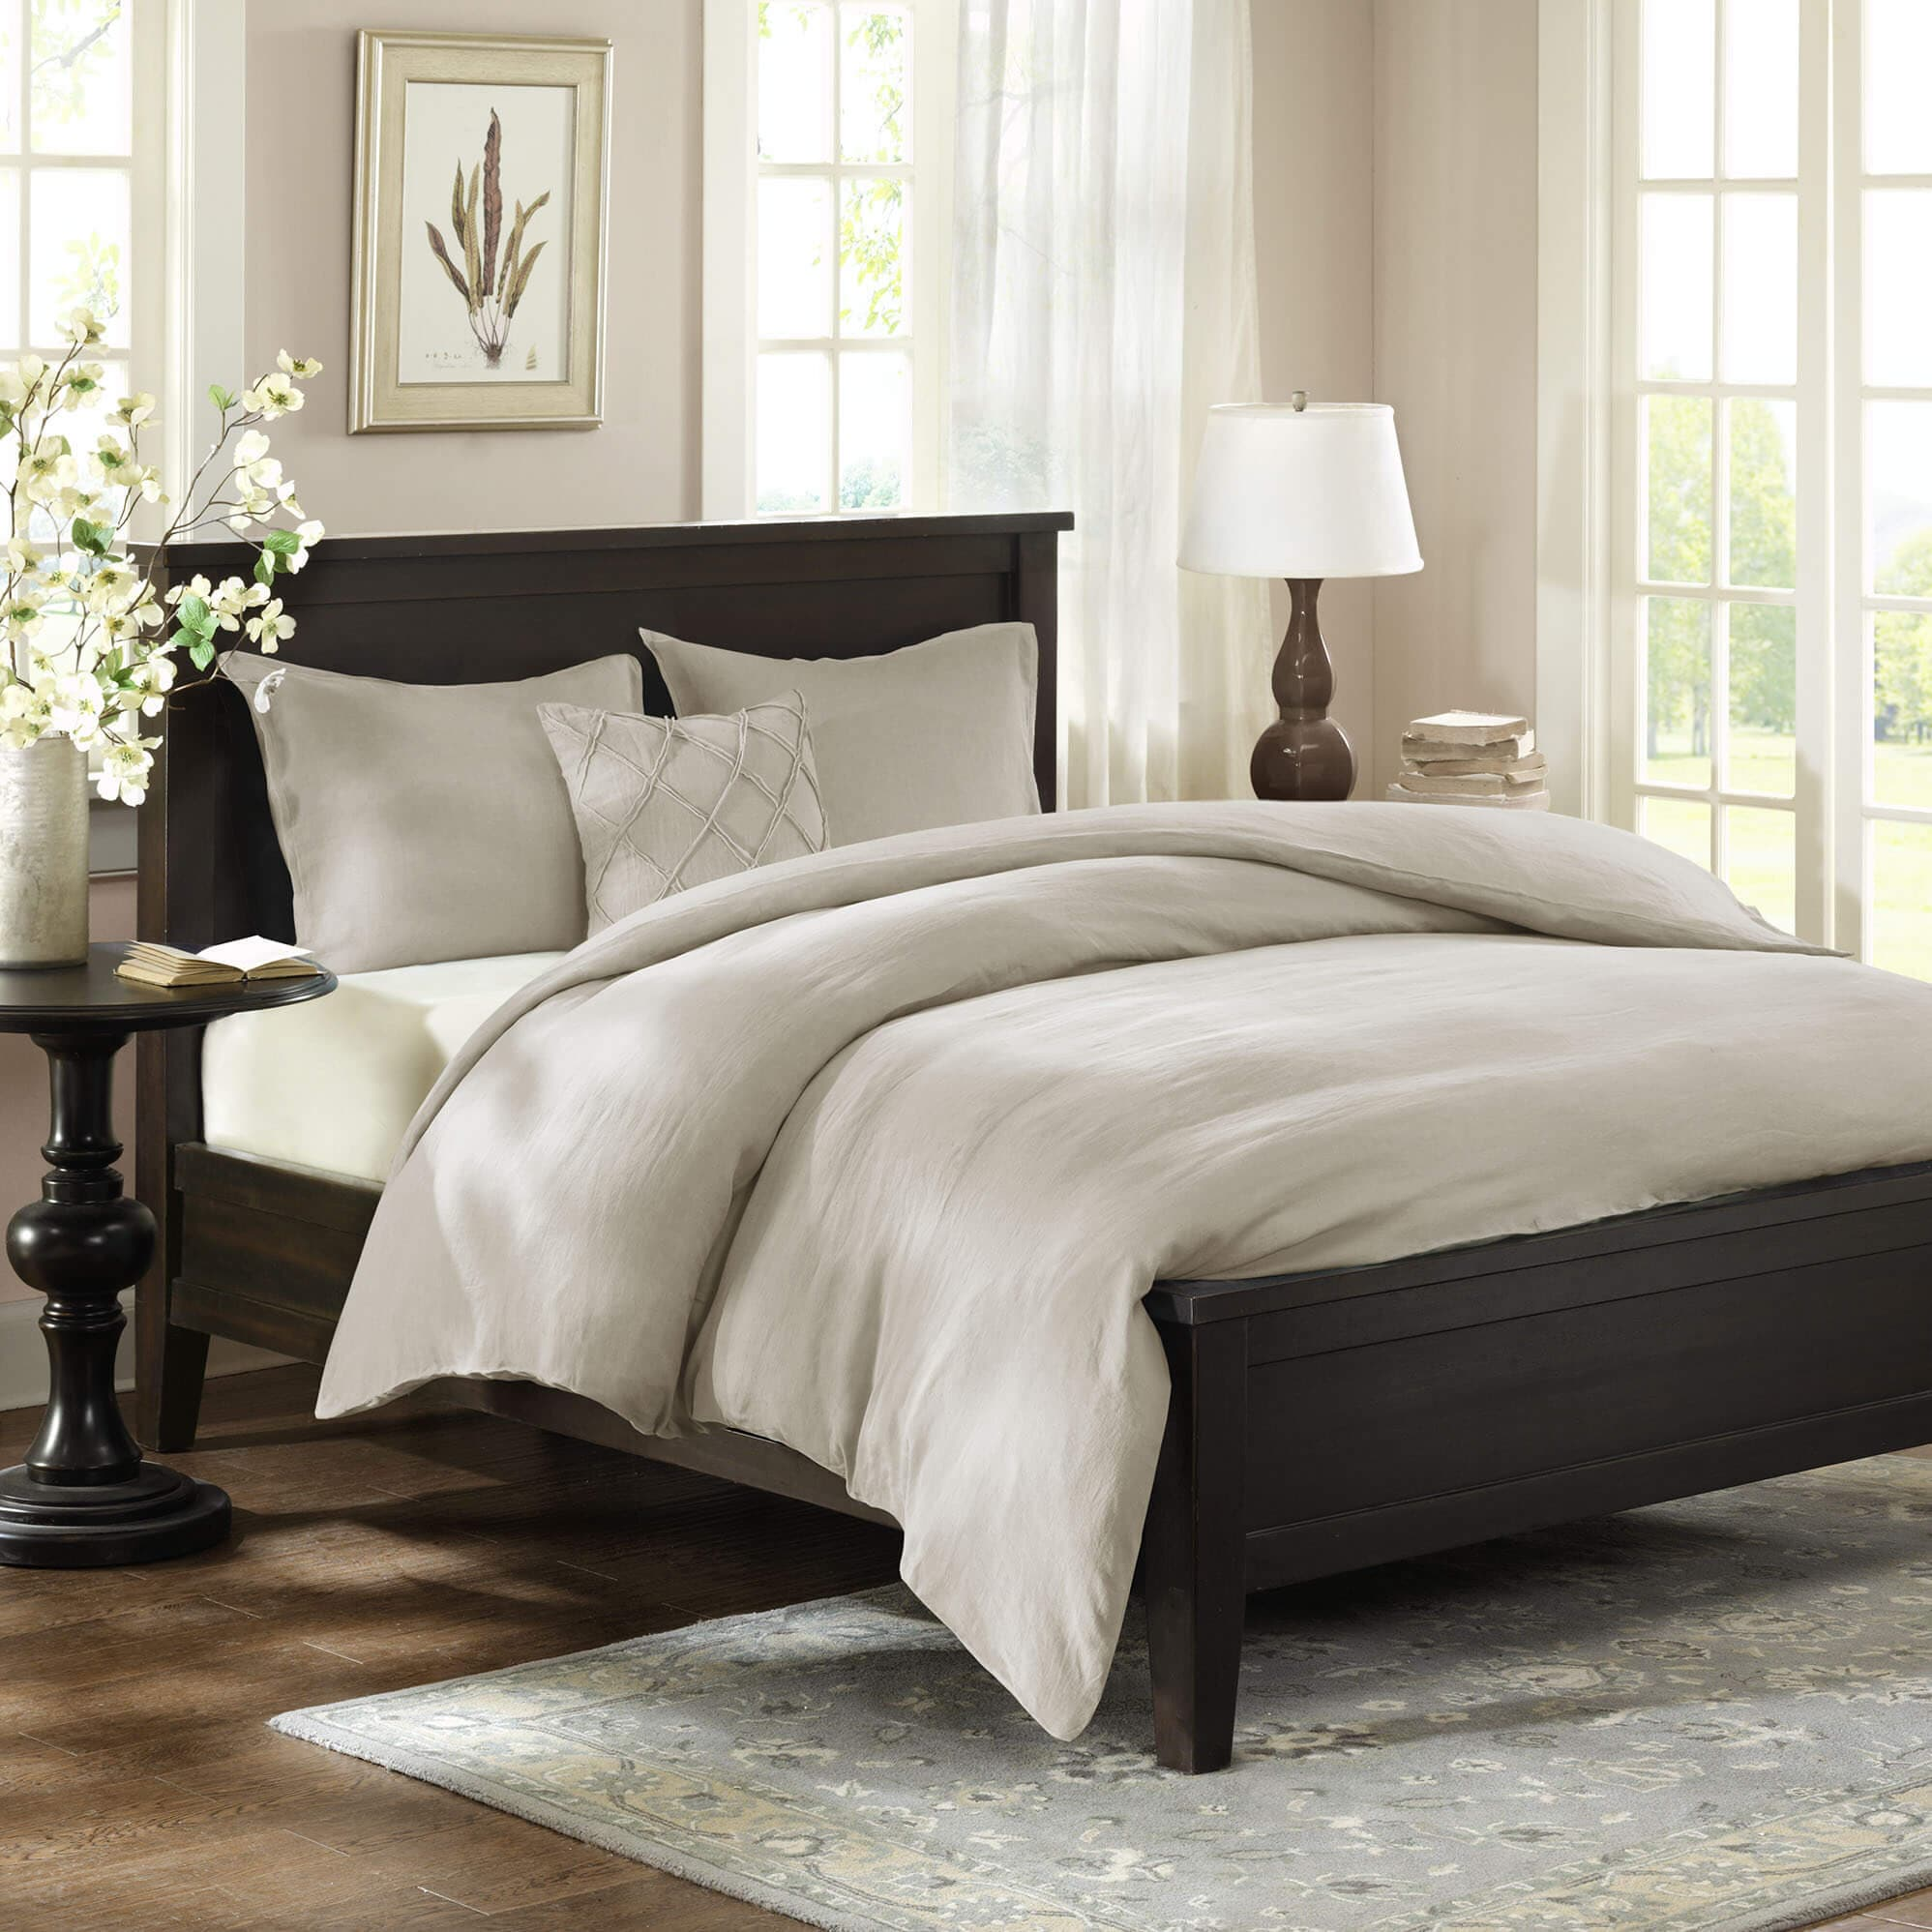 Duvet Vs Comforter What 39 S Best For Your Bed Overstock